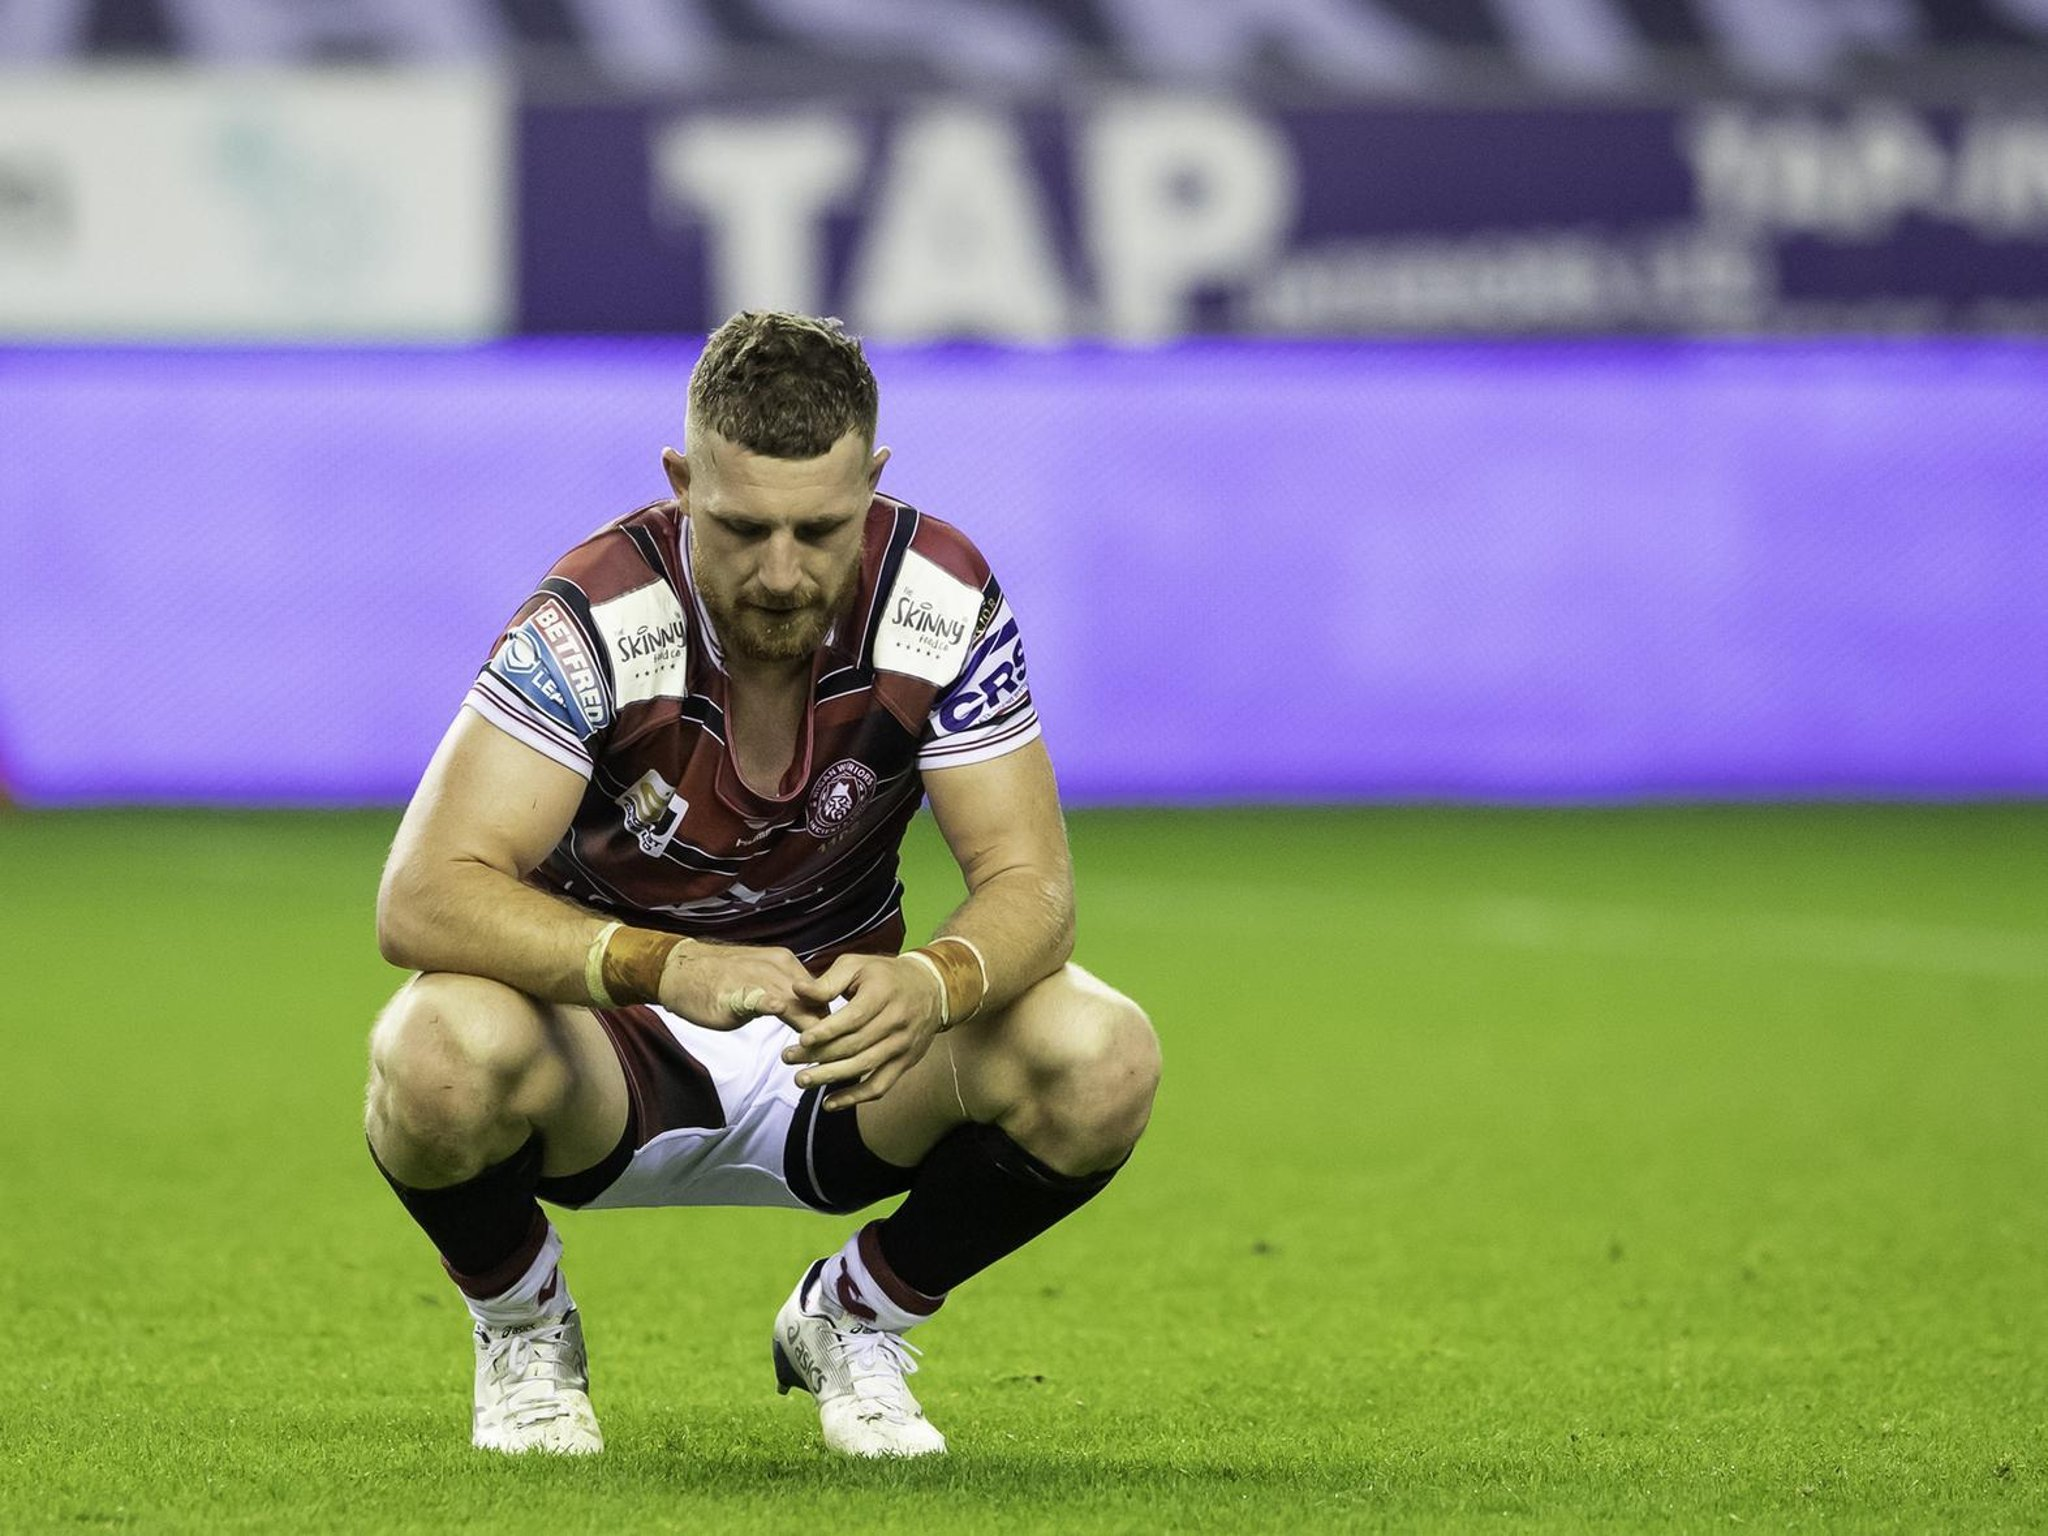 Wigan Warriors: The place did it go improper this season?